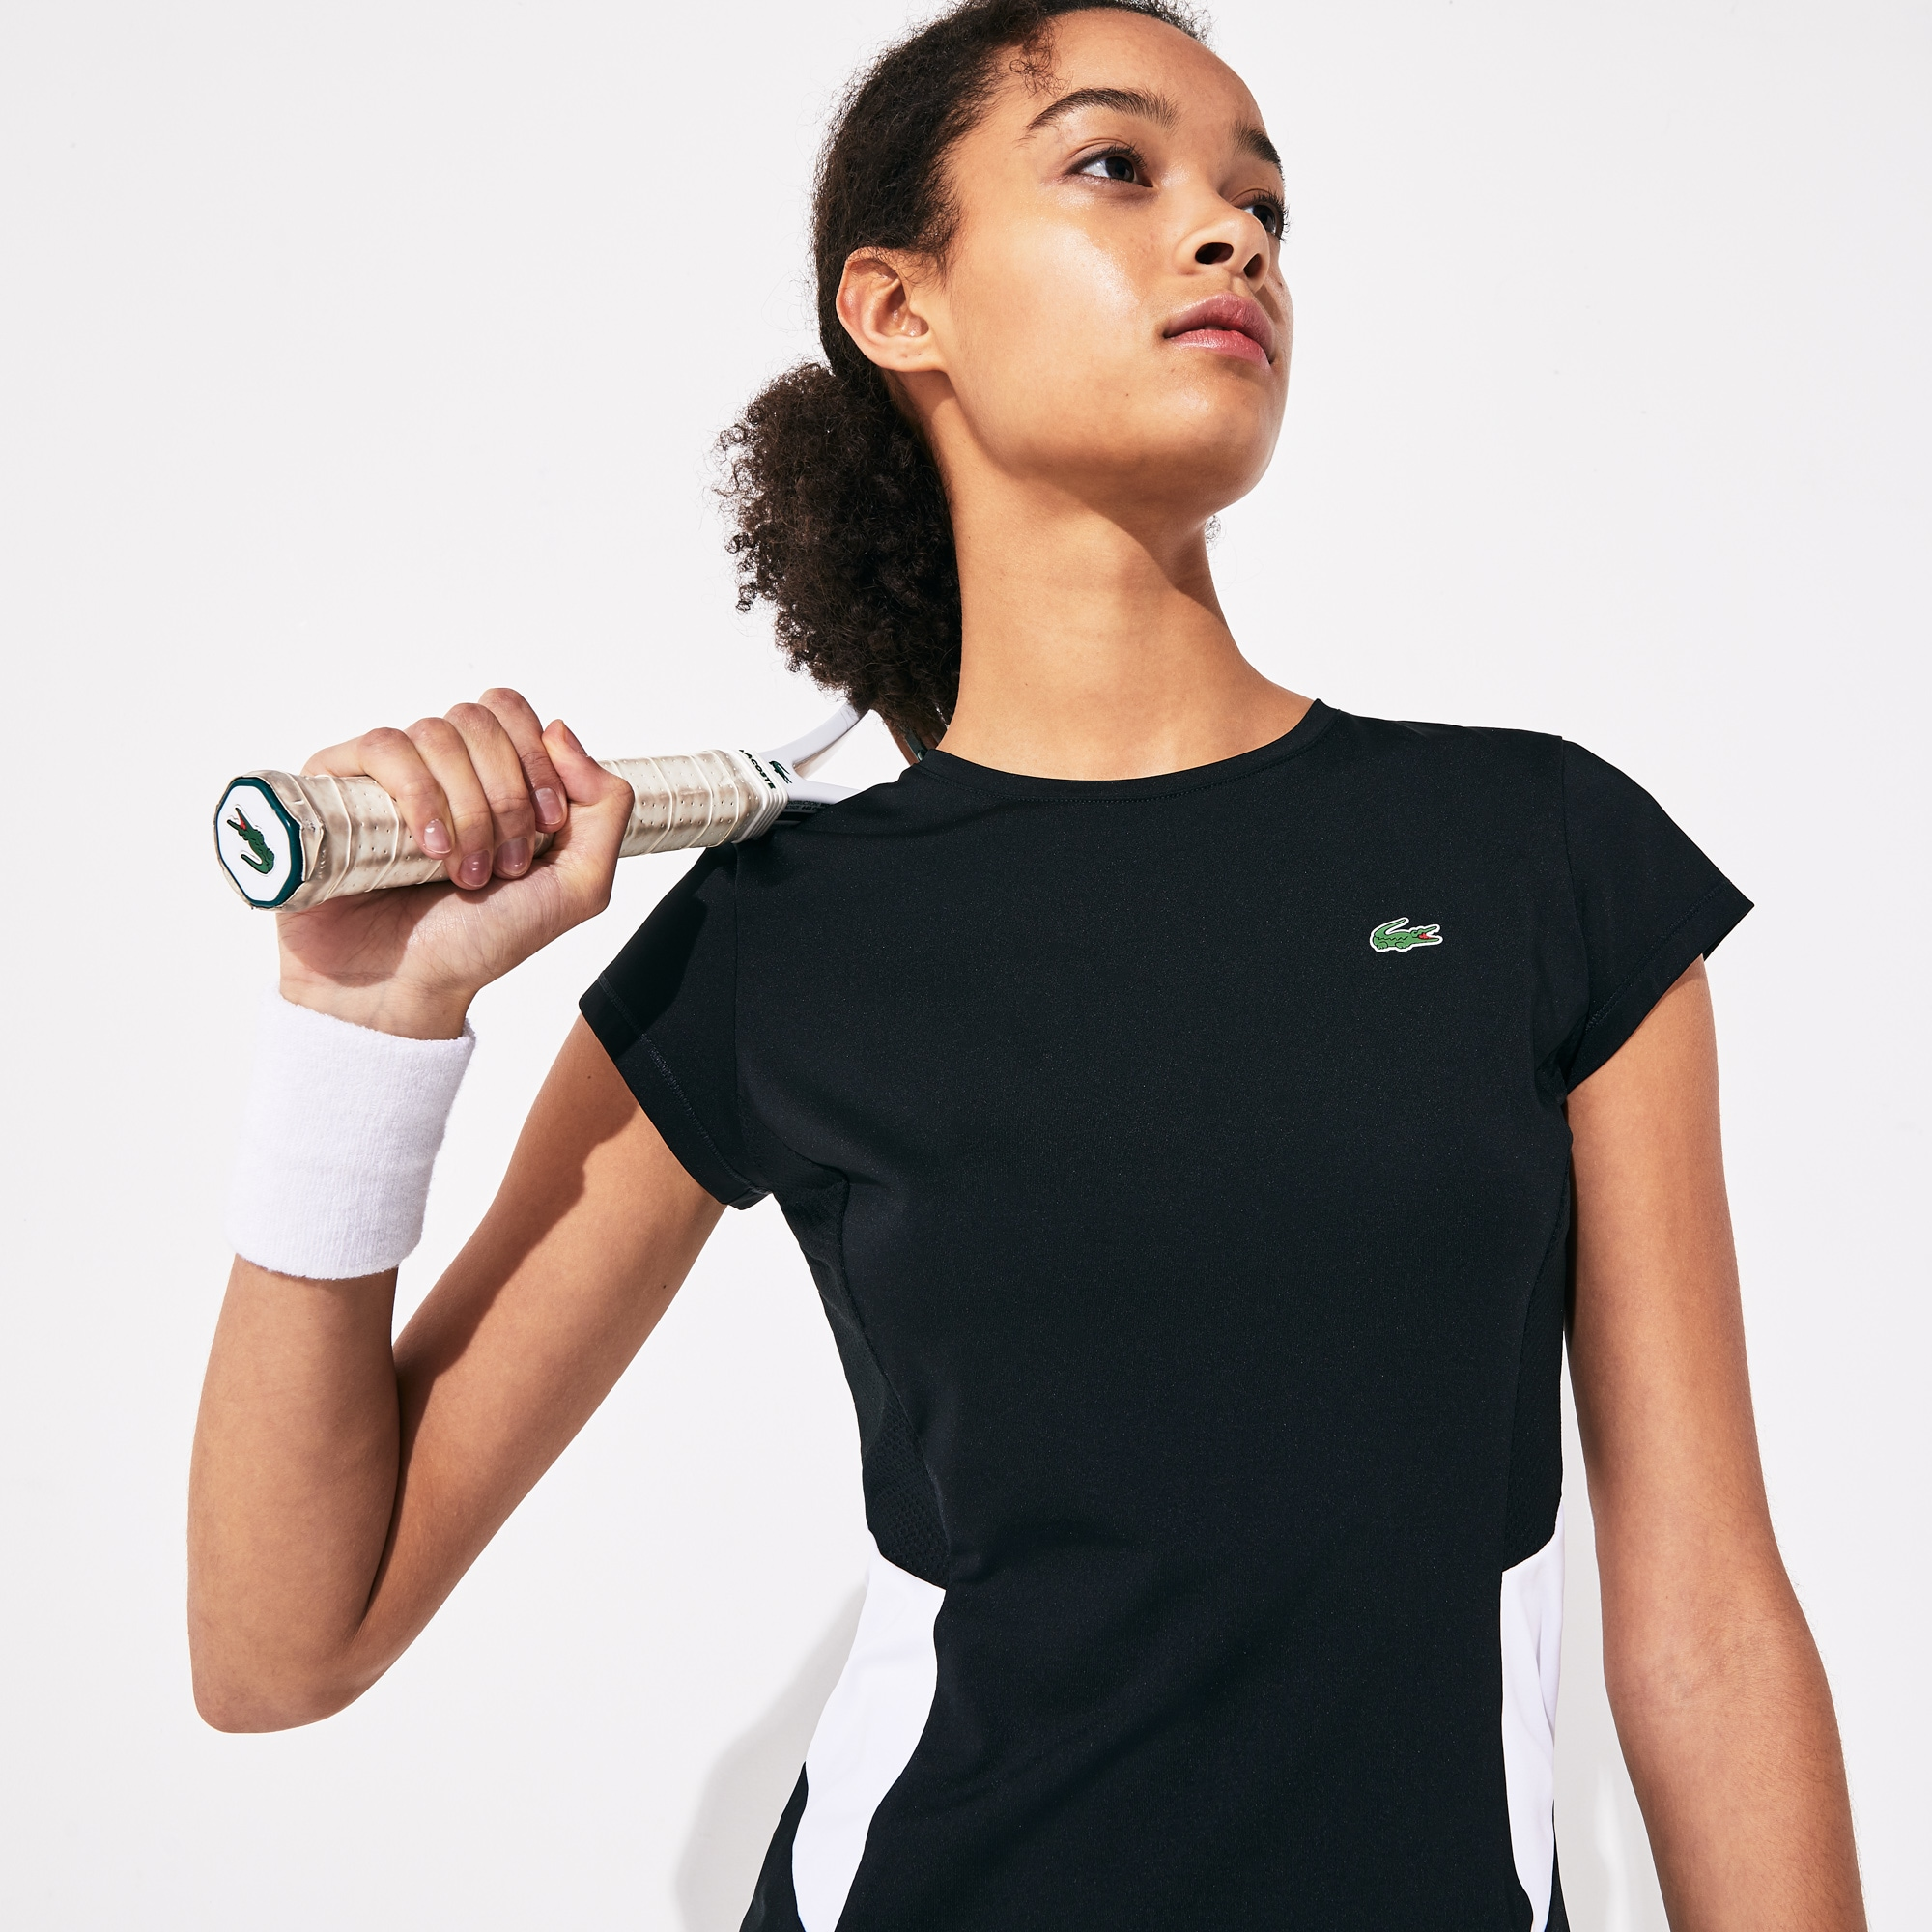 Women's Lacoste SPORT Crew Neck Stretch Tech Jersey Mesh Tennis T-shirt